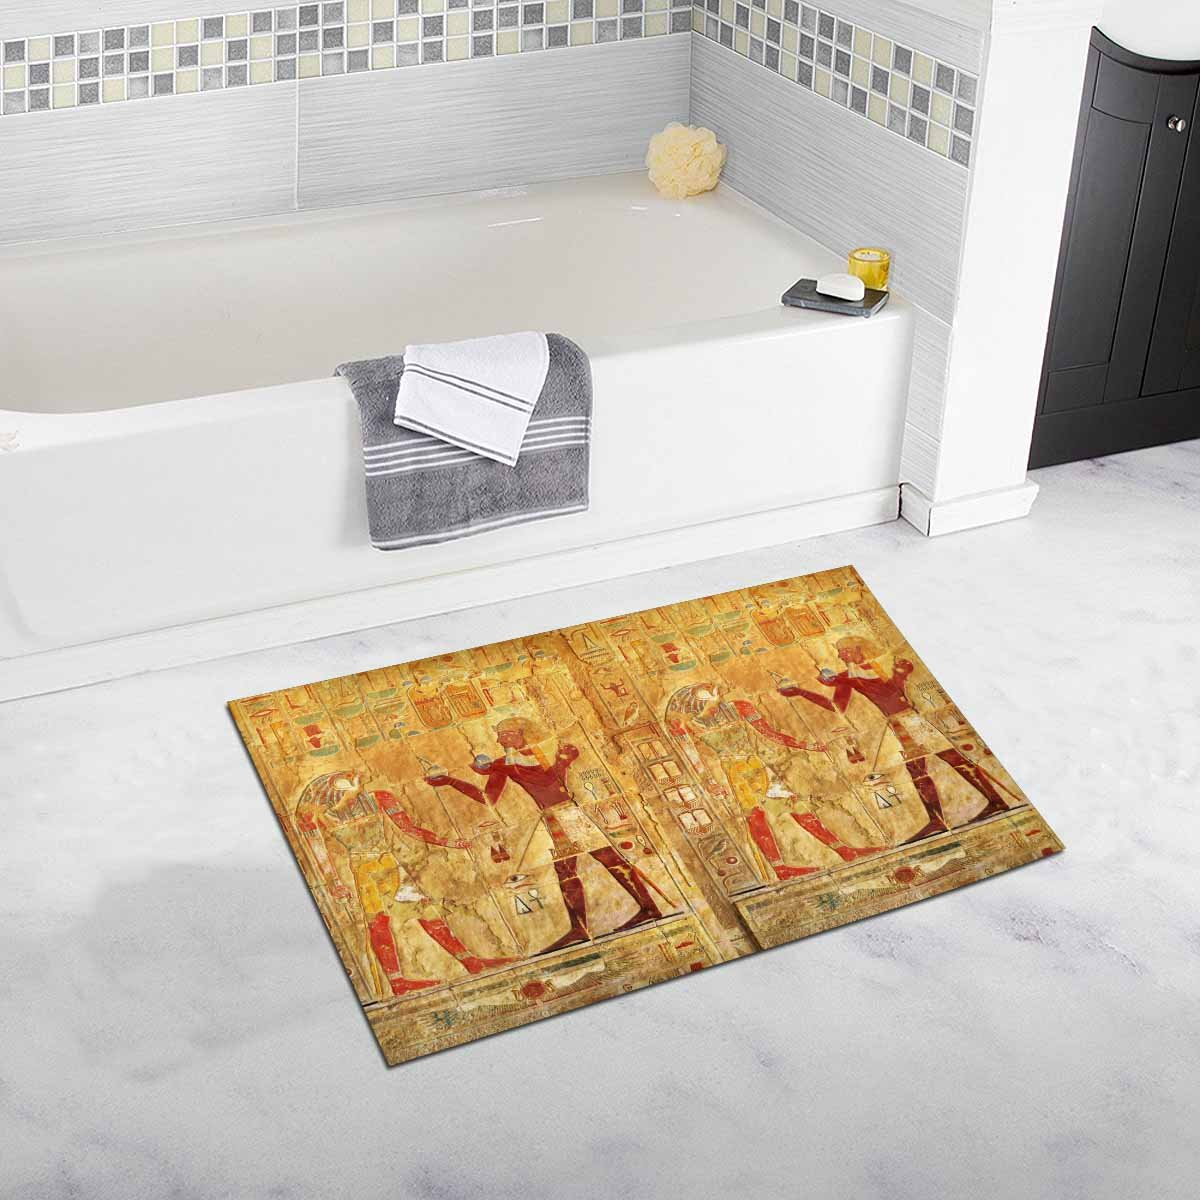 InterestPrint Ancient Egypt Color Images On Wall In Luxor Decor Non Slip Bath Rug Mat Absorbent Bathroom Floor Mat Doormat Large Size 20 x 32 Inches